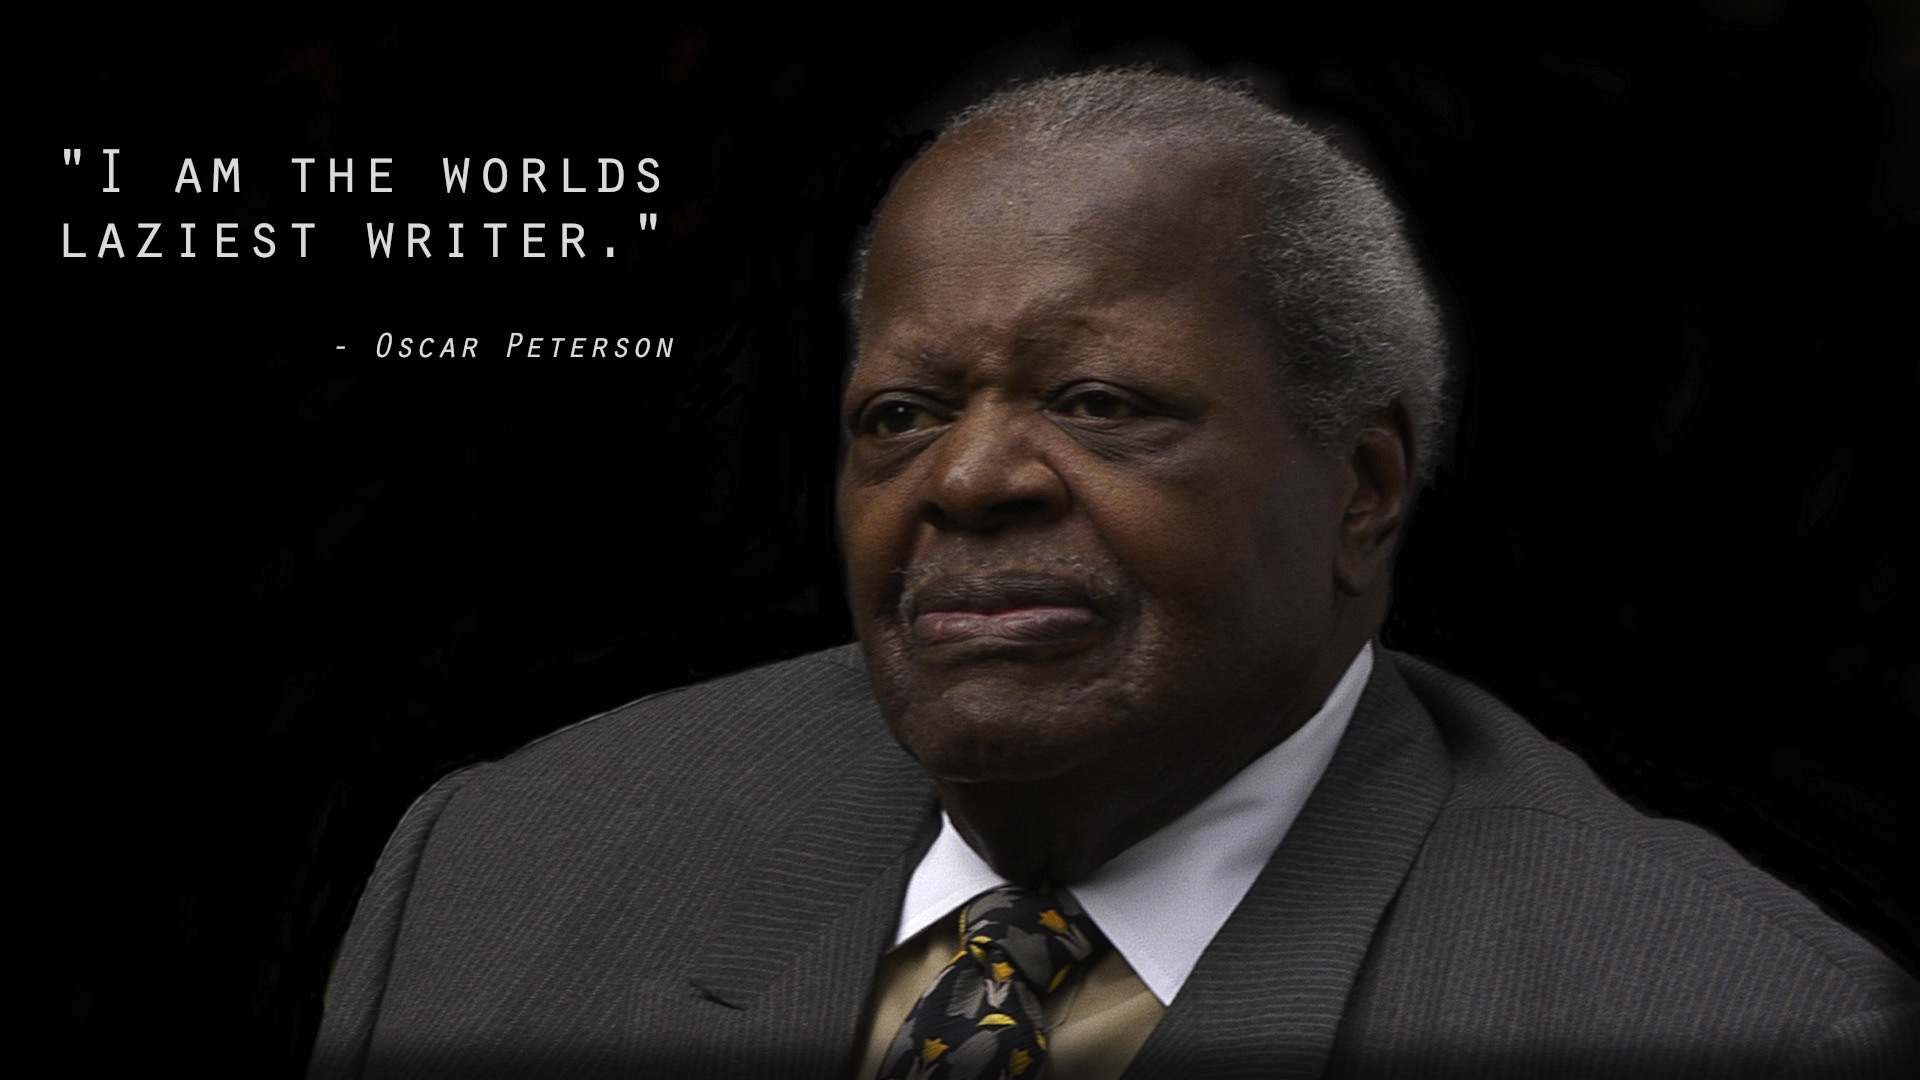 Oscar Peterson's quote #2